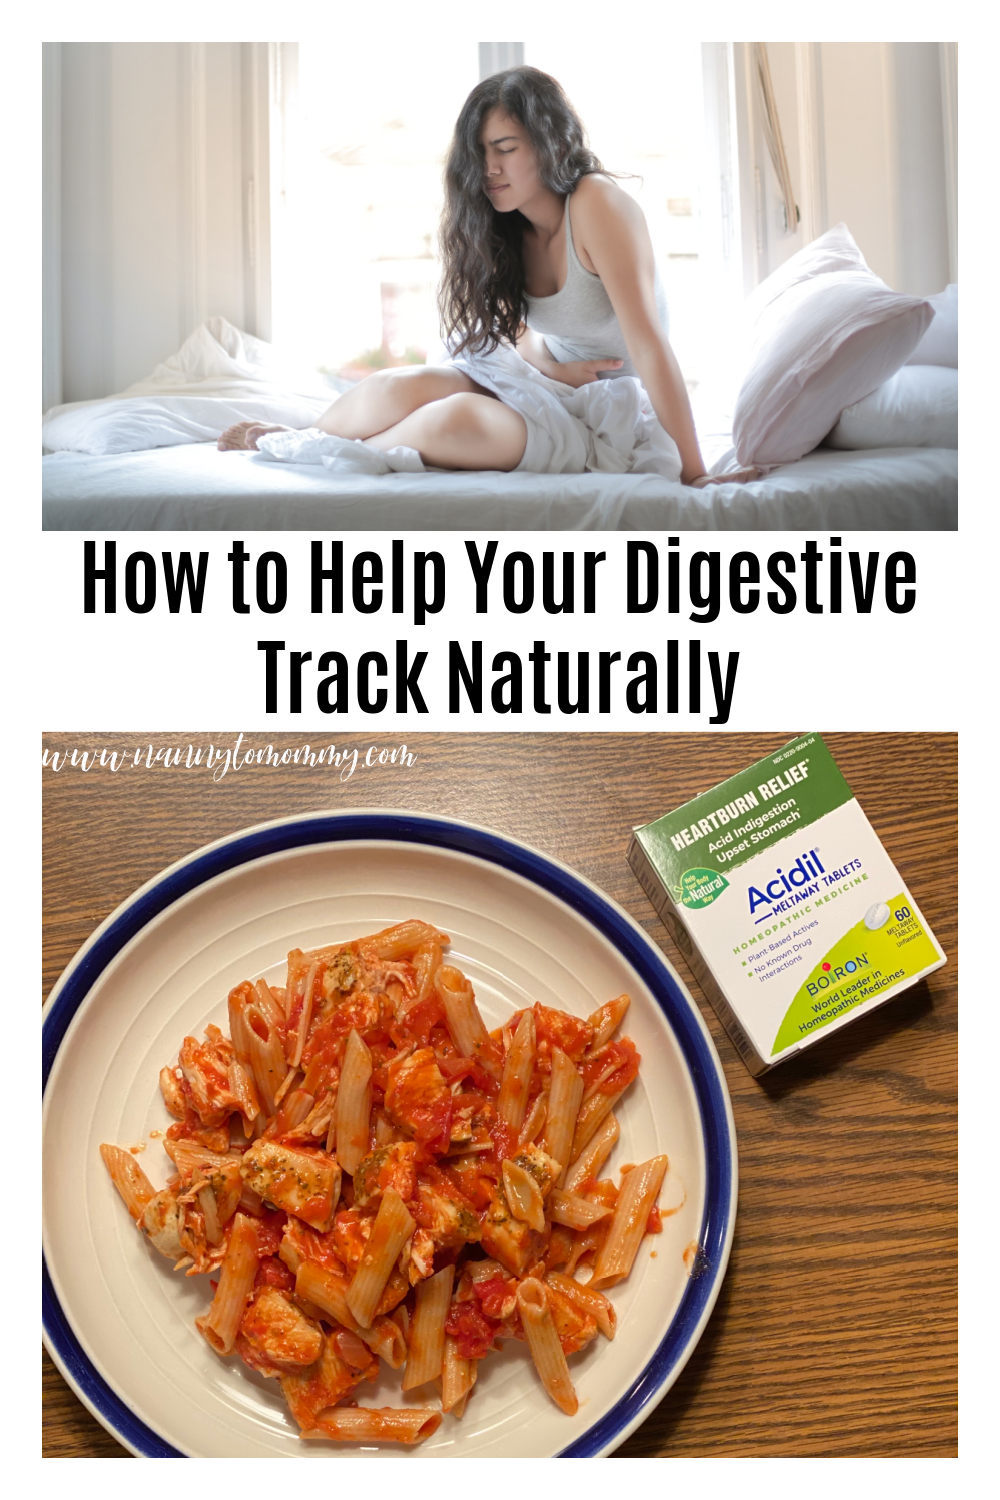 How to Help Your Digestive Track Naturally